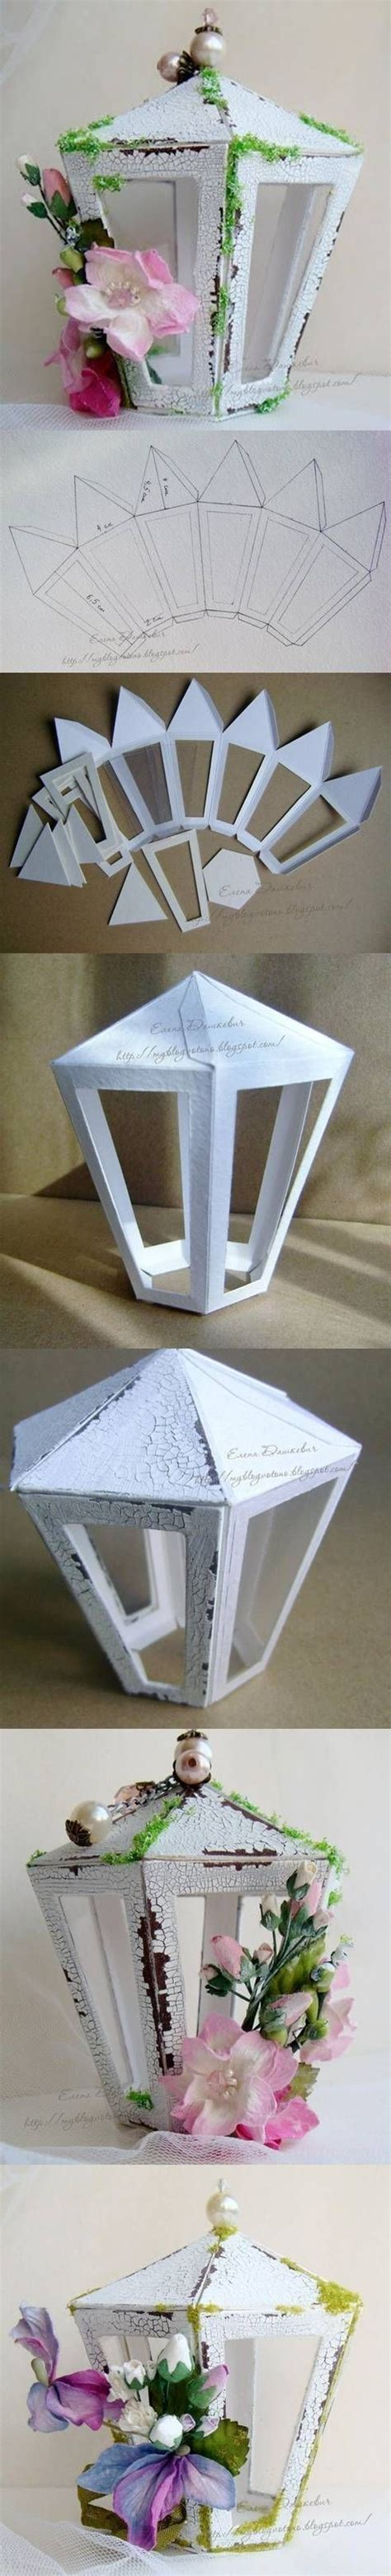 Paper Lantern Craft Template - diy cardboard lantern template diy projects usefuldiy